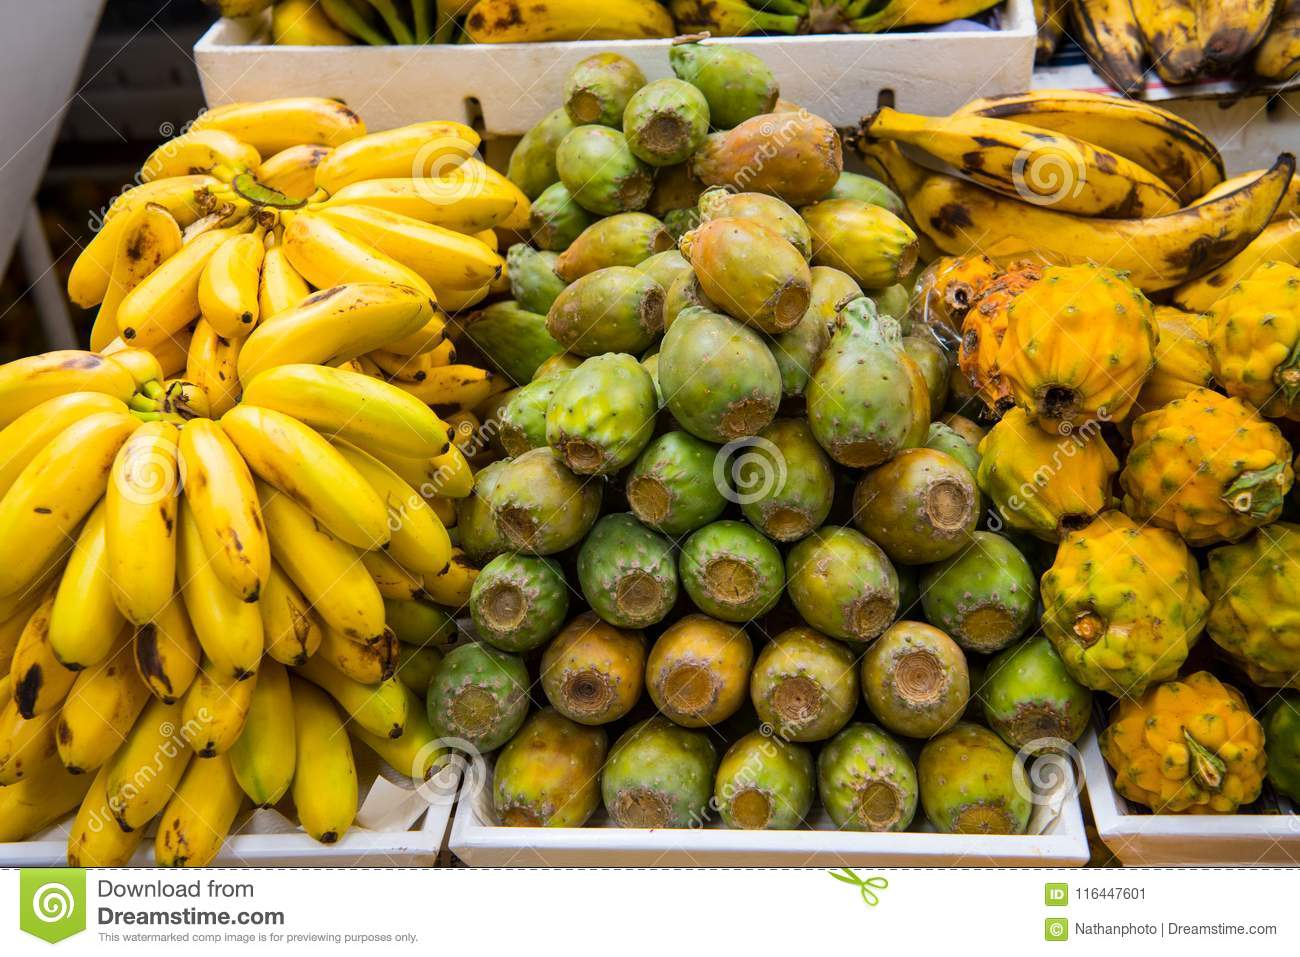 Bananas, Dragon Fruit, Cactus Fruit, For Sale In South